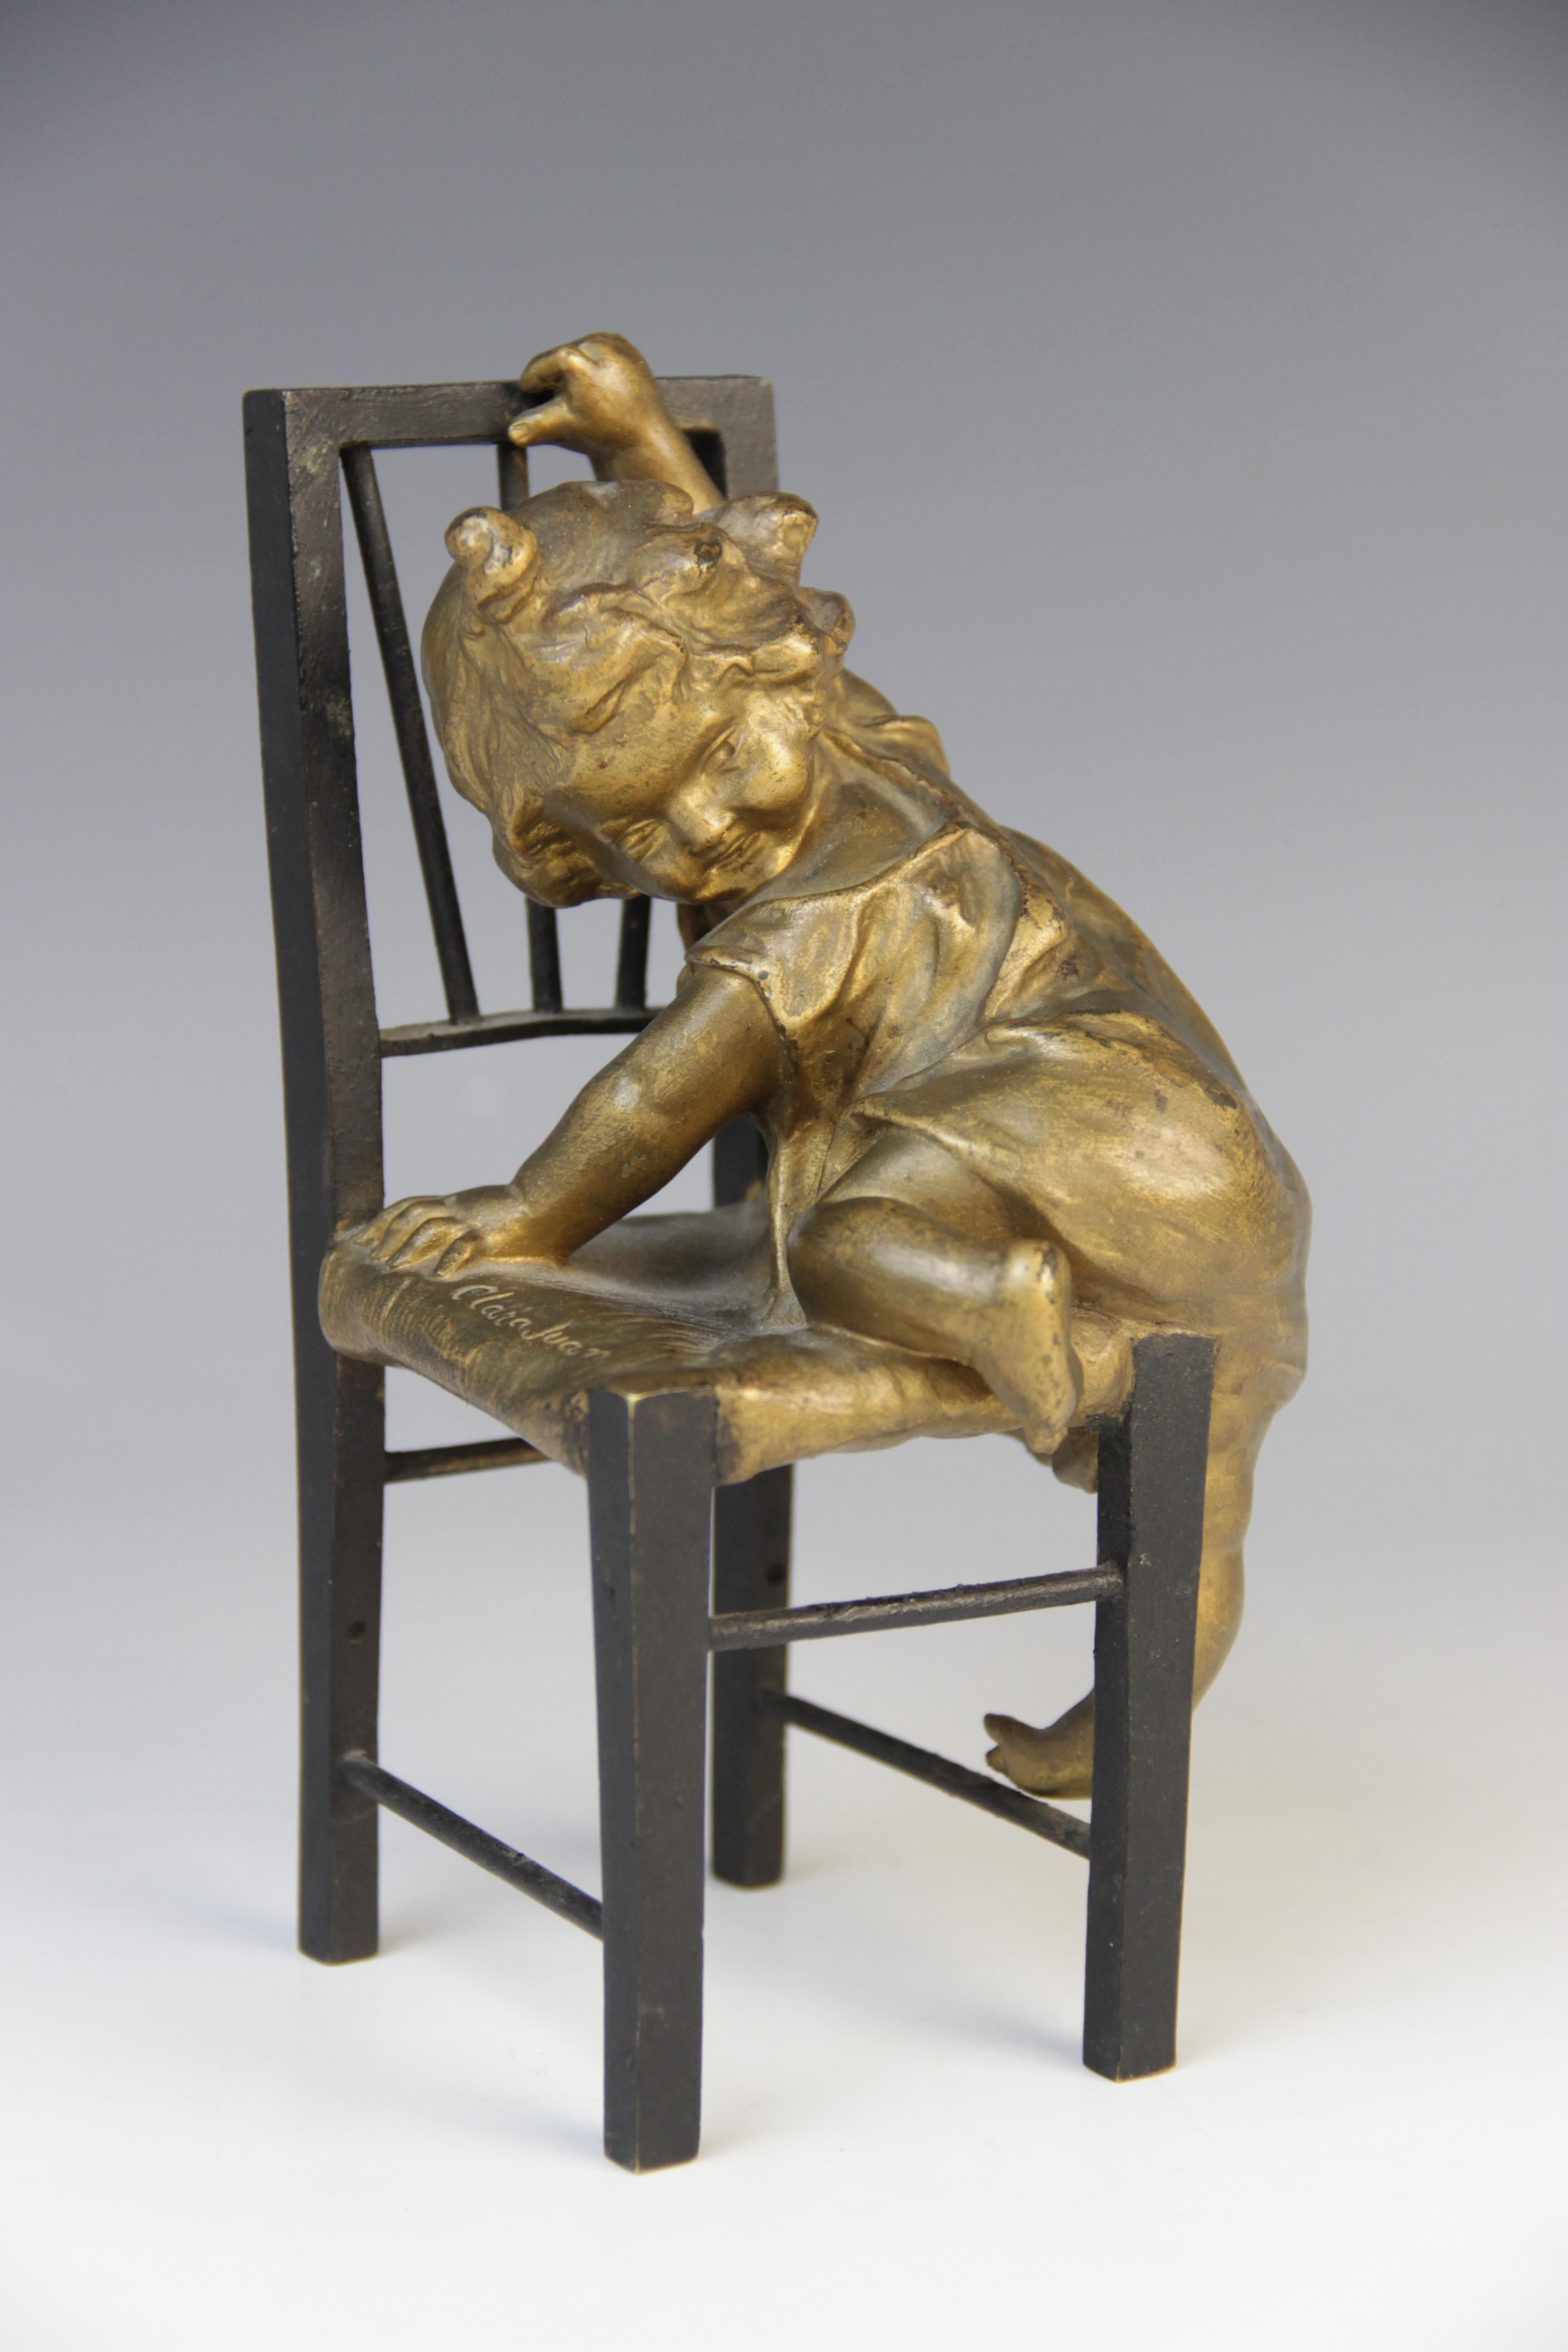 After Juan Clara (Spanish, 1857-1958), a patinated bronze and gilt figure, modelled as a child